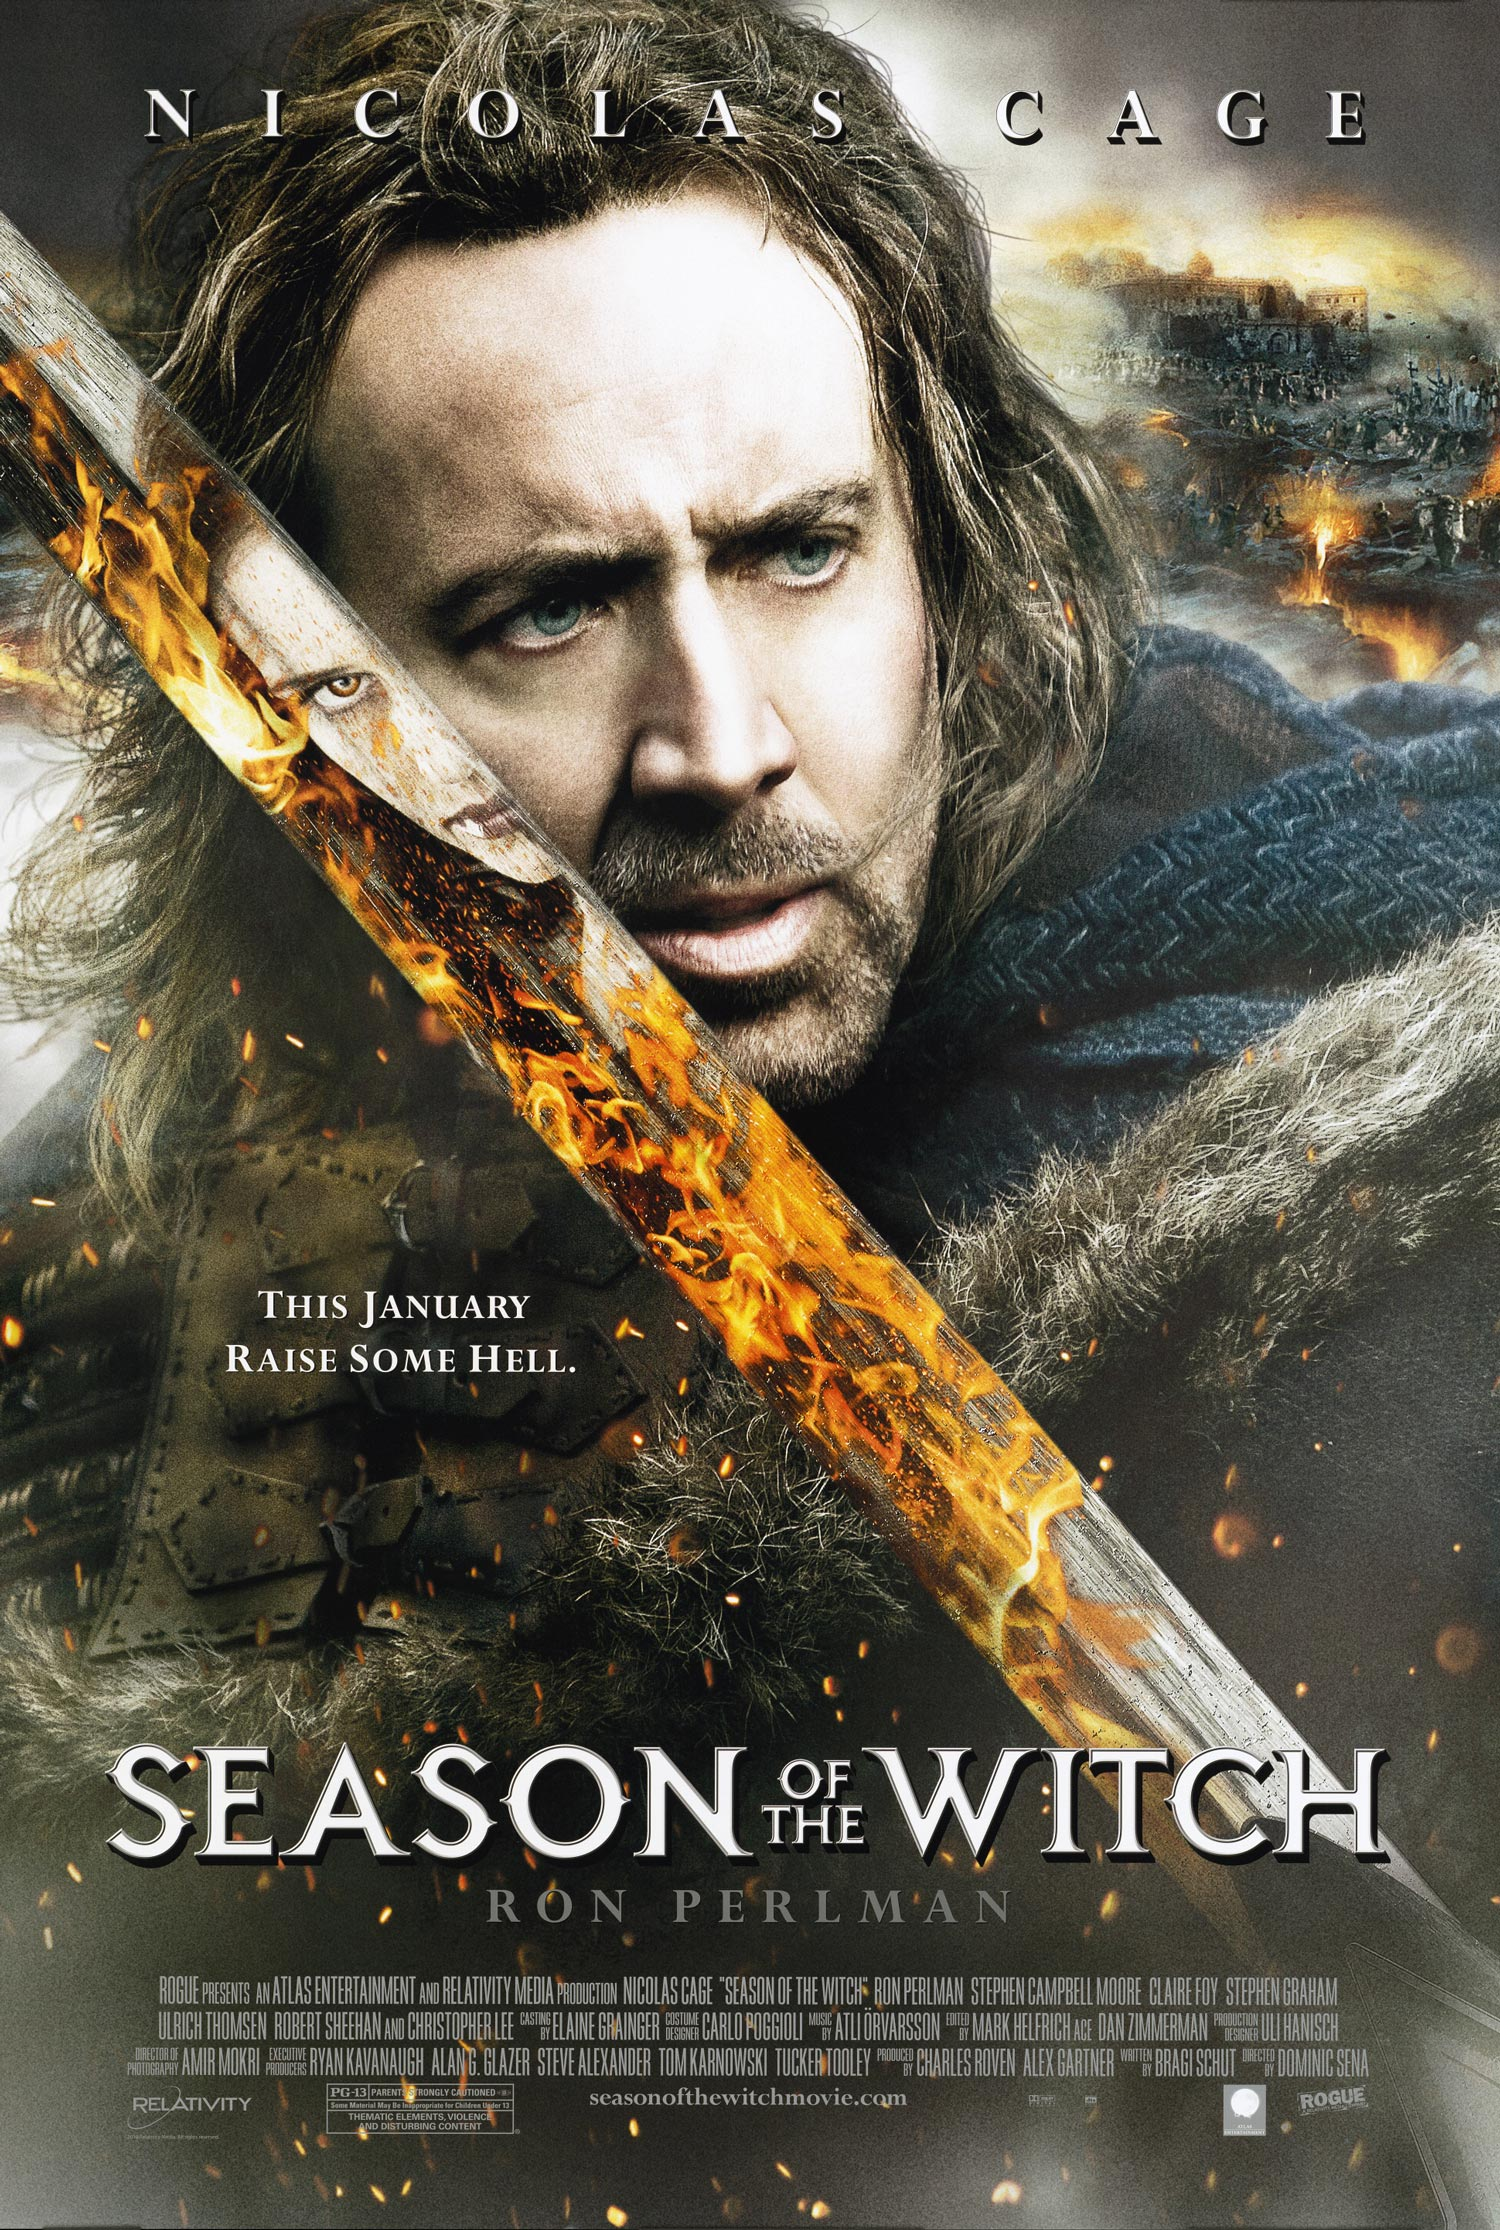 Movie Poster - Season of the Witch